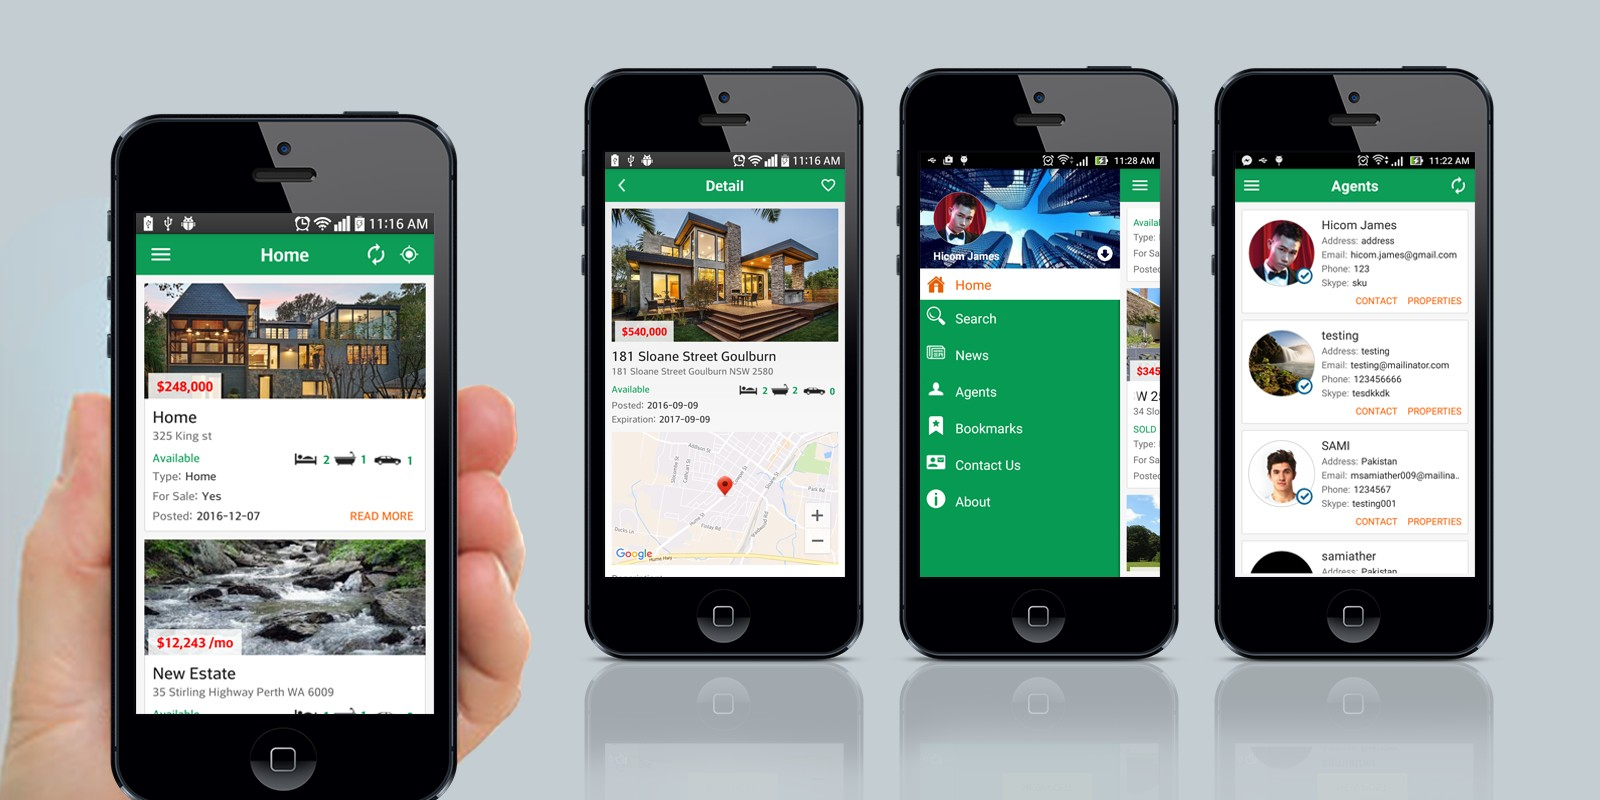 real estate android source code - FREE ONLINE